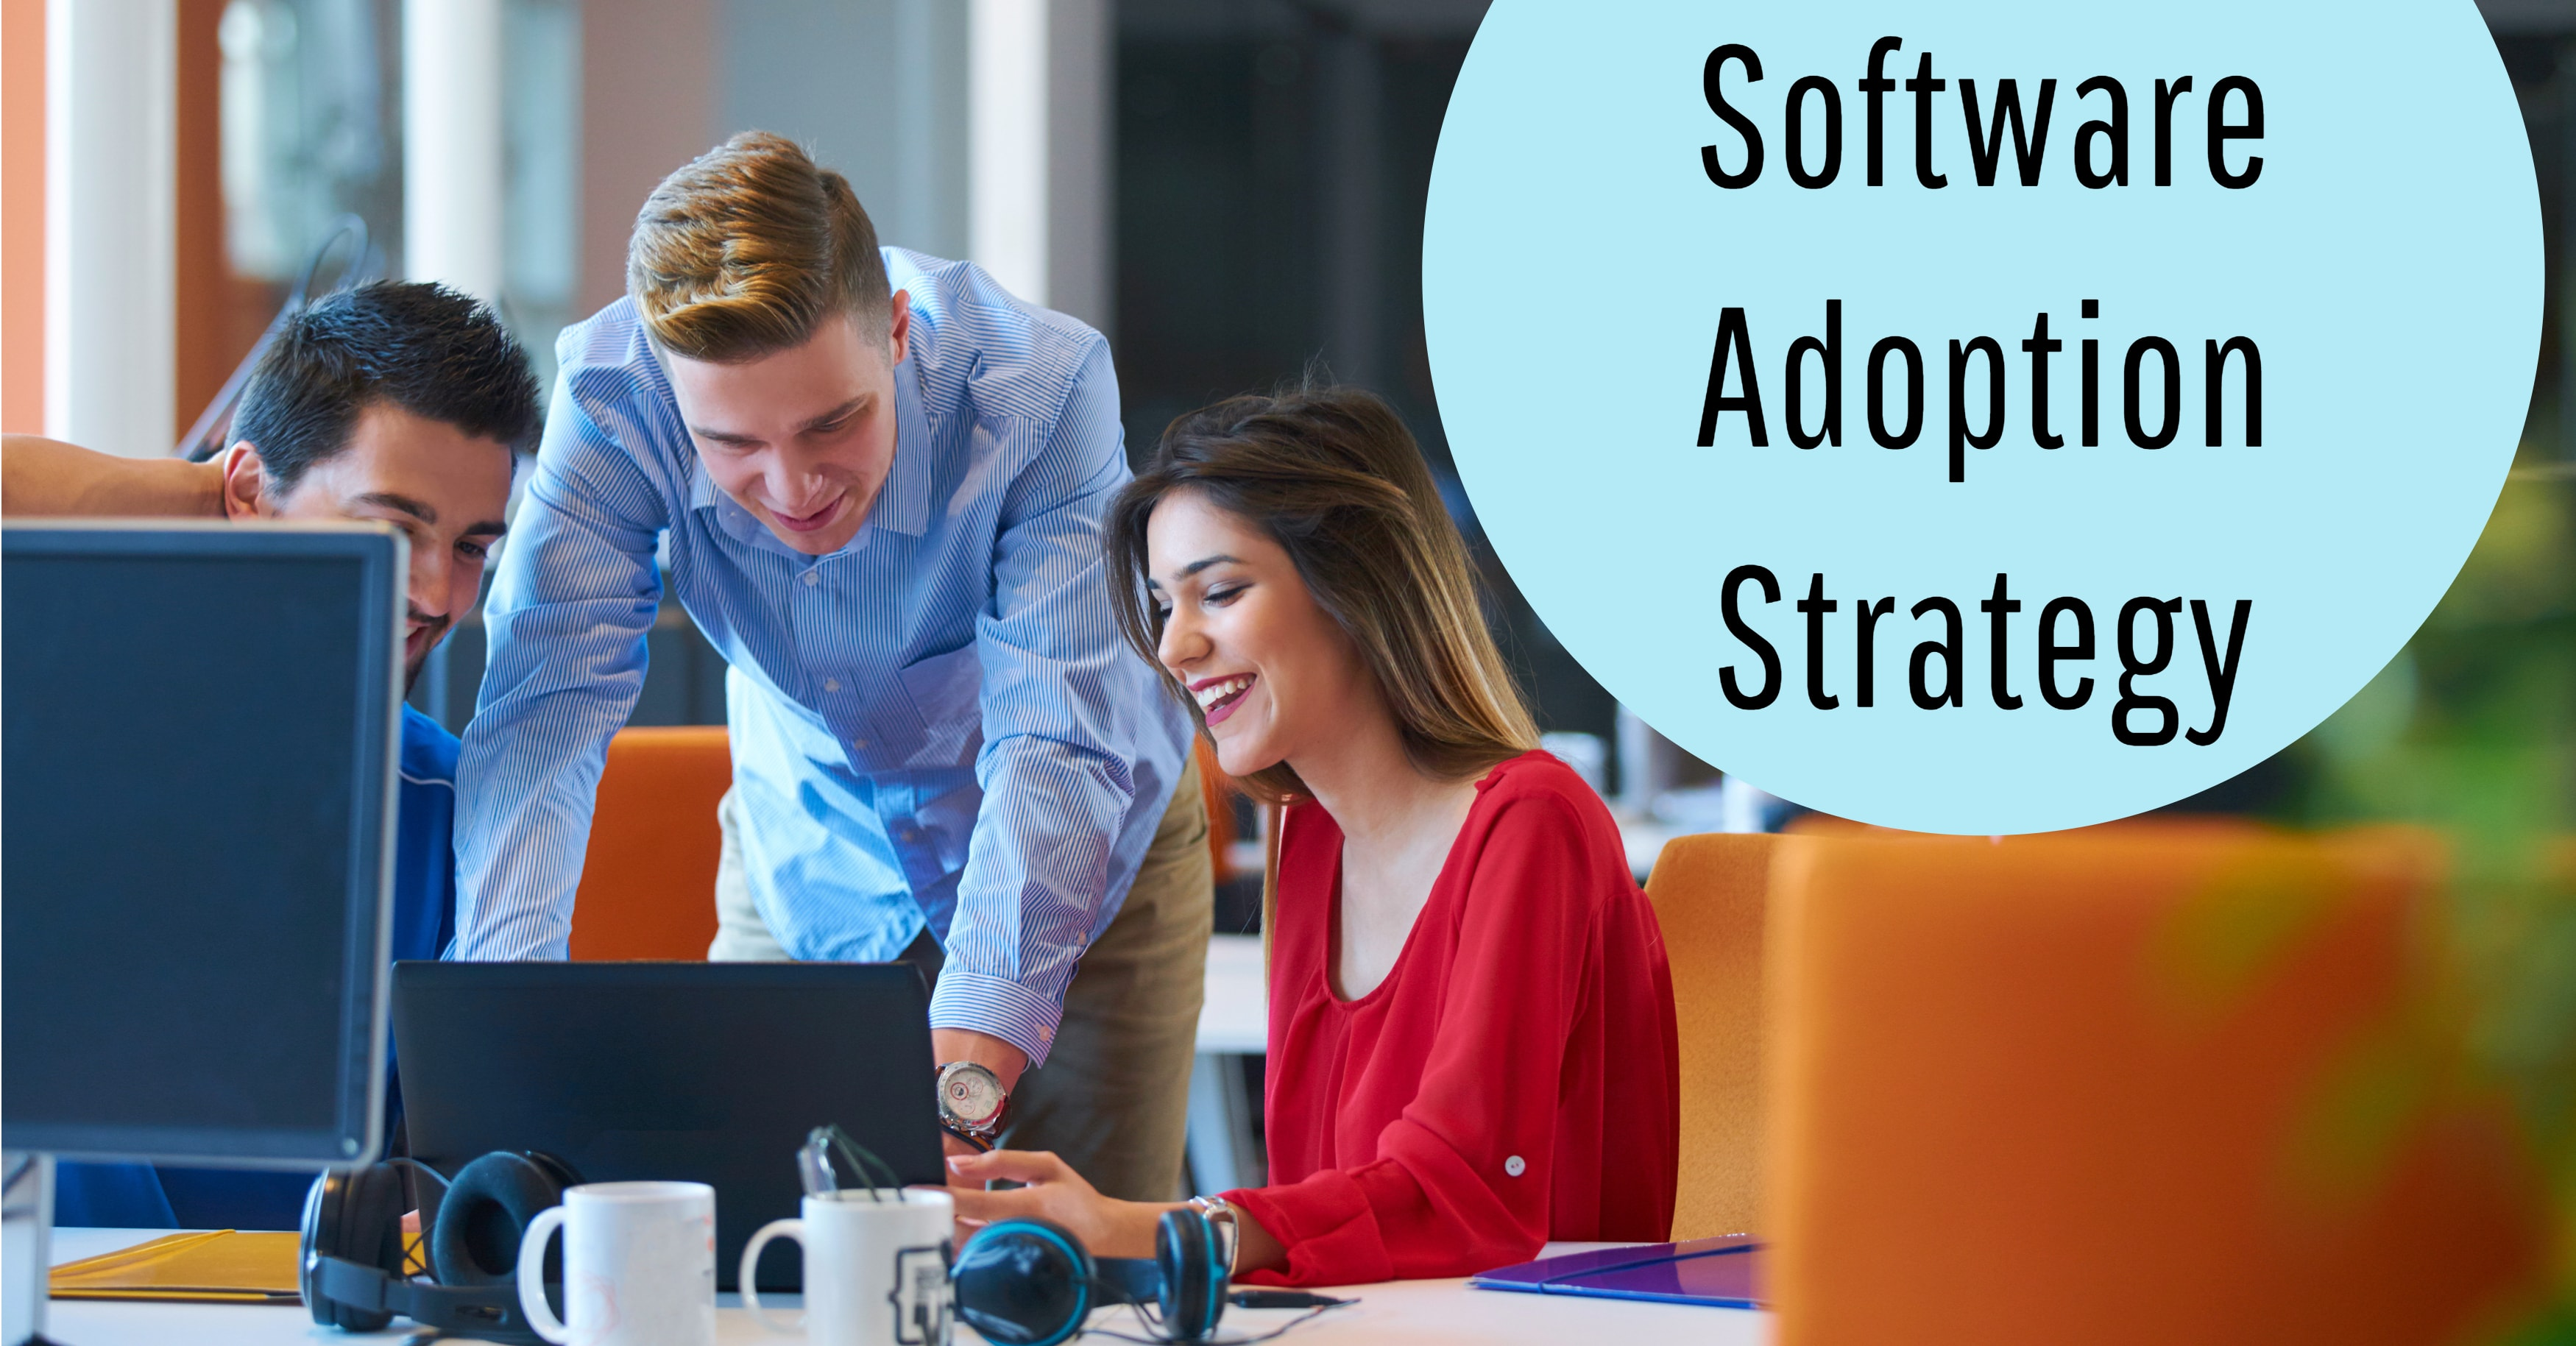 Tips for Building Your Software Adoption Strategy